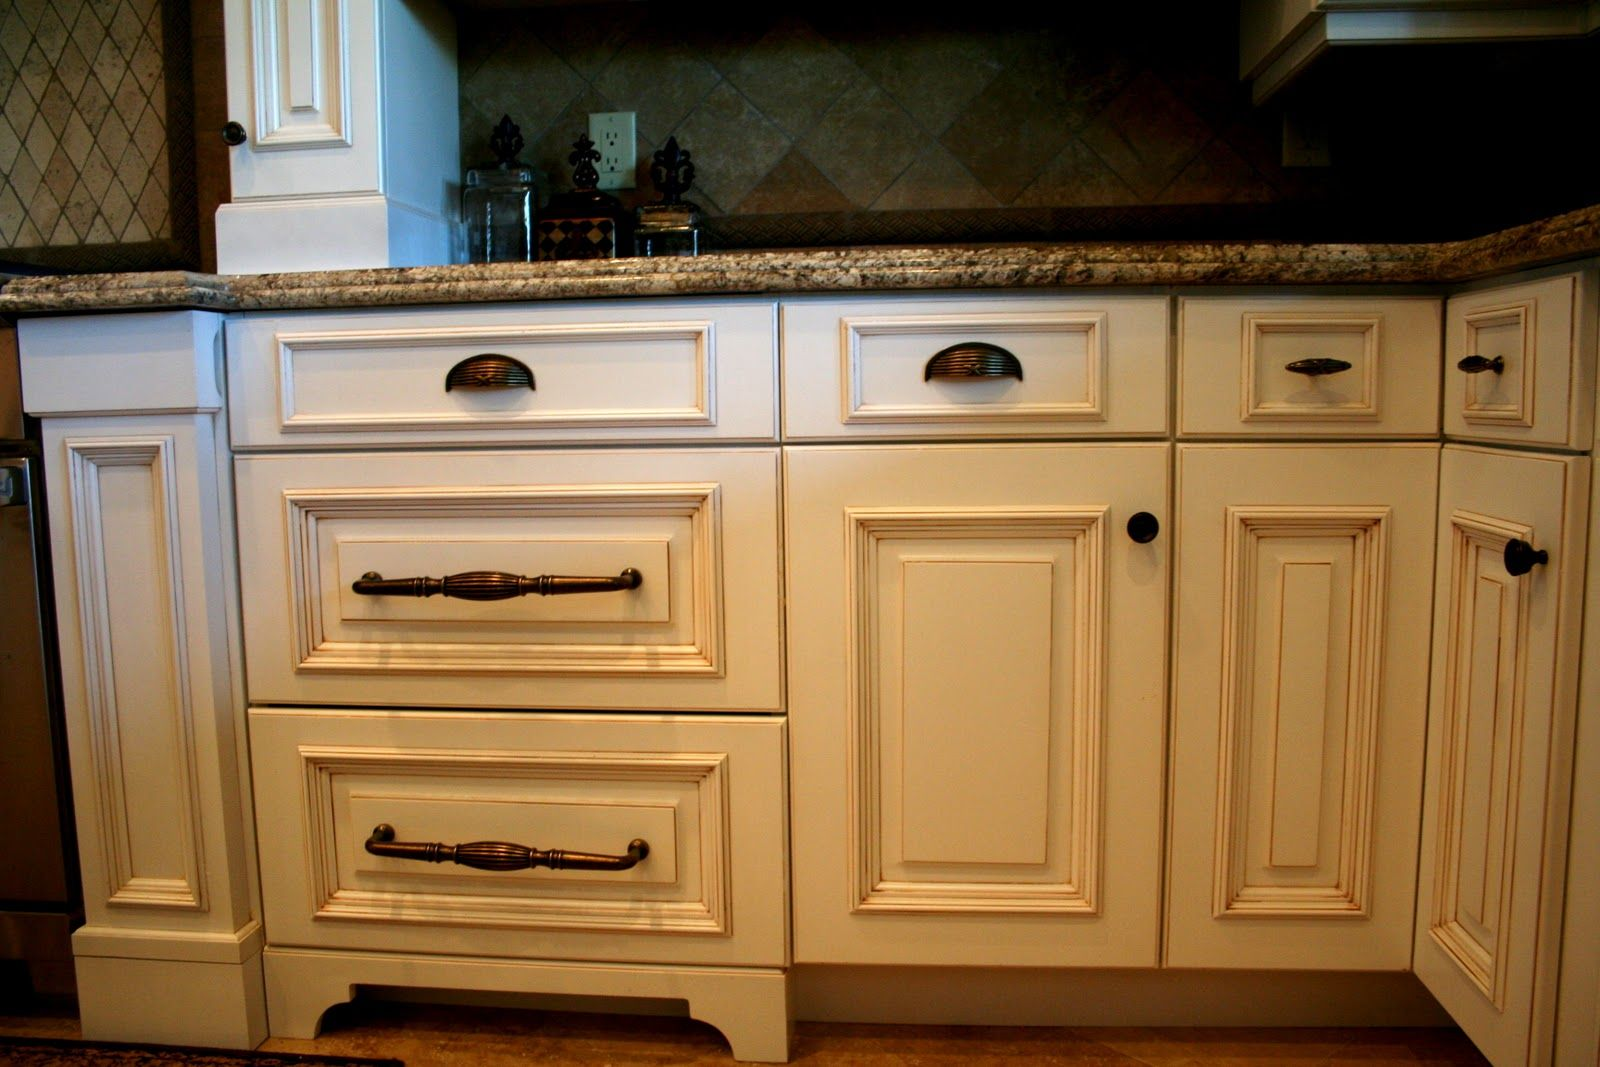 Kitchen Cabinet Knobs And Pulls Kitchen Cabinets Knobs And Pulls | Pulls Mixed With